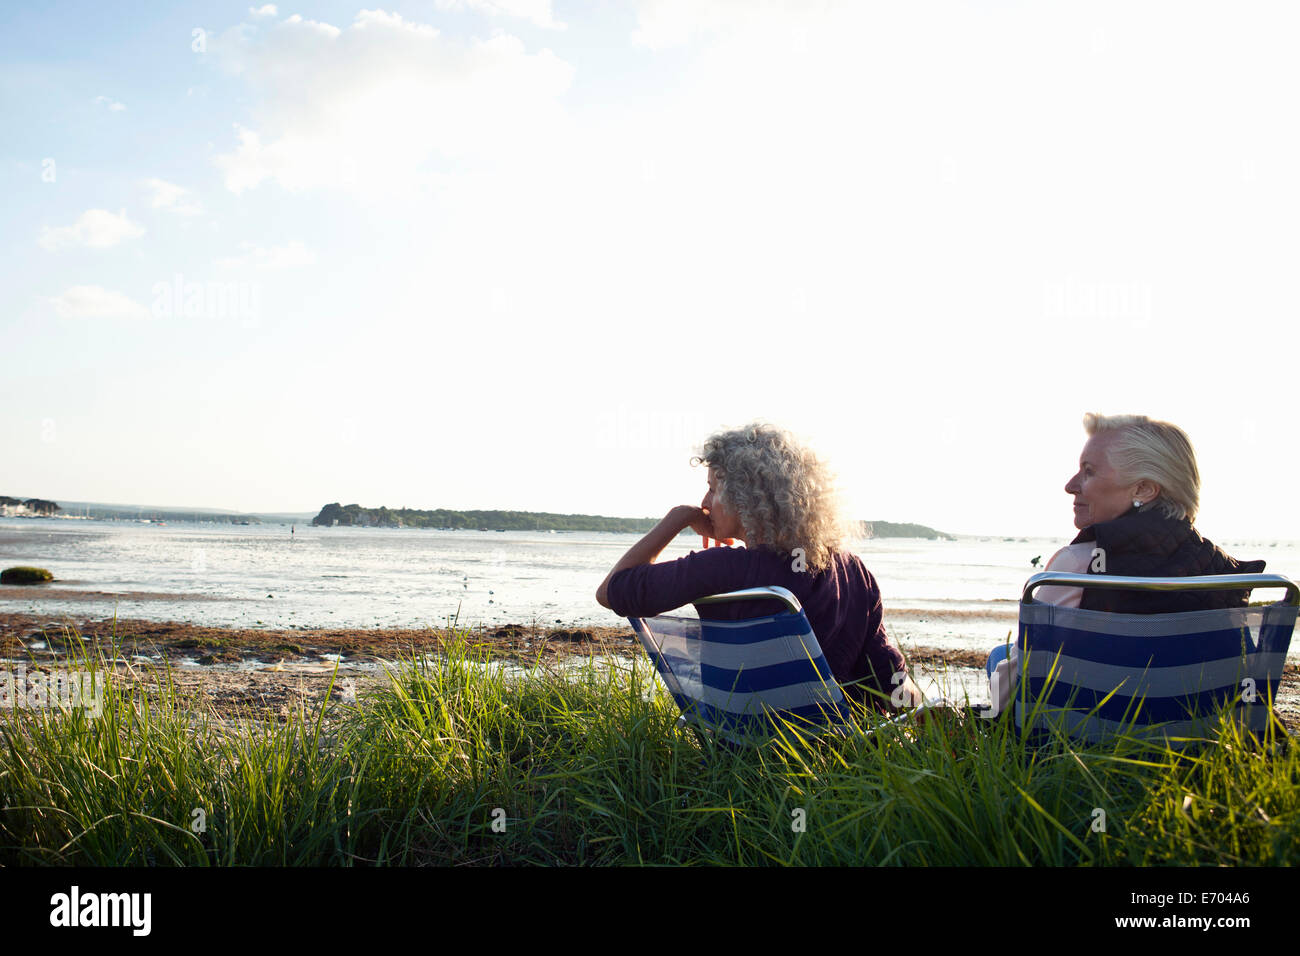 Mother and daughter enjoying view on beach - Stock Image